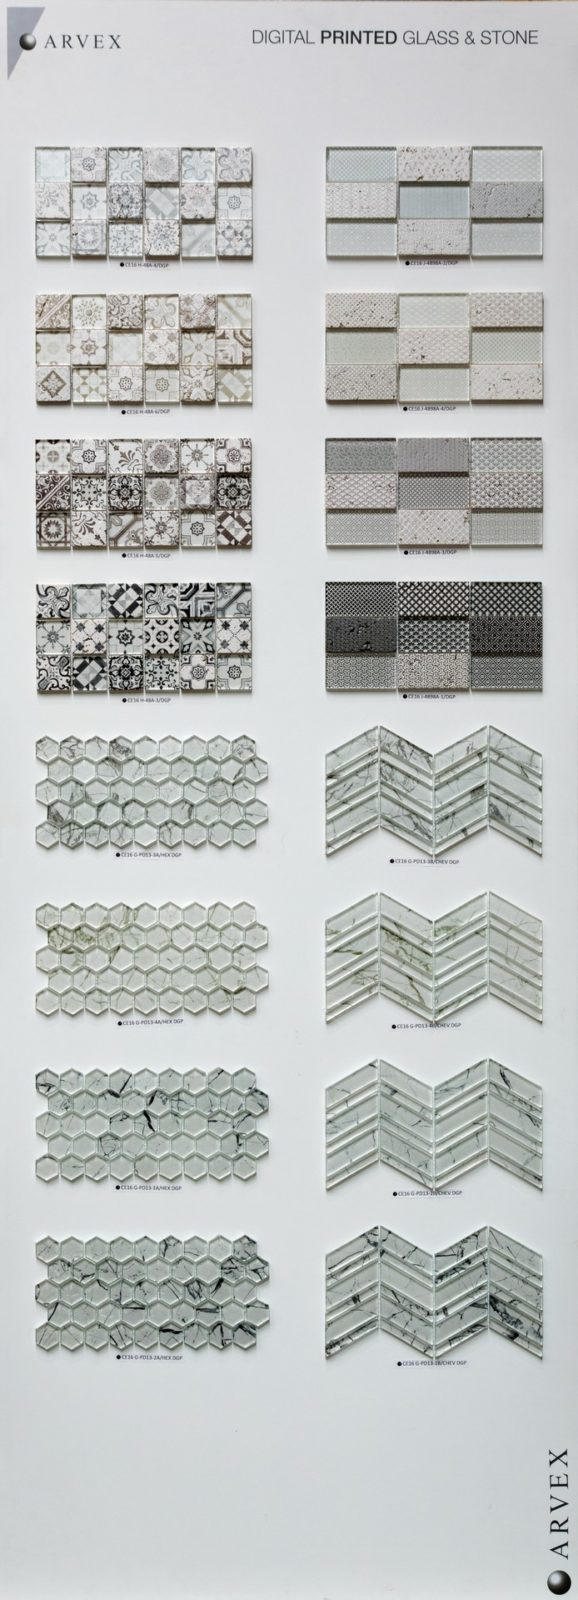 Mosaico - Digital Printed Glass e Stone